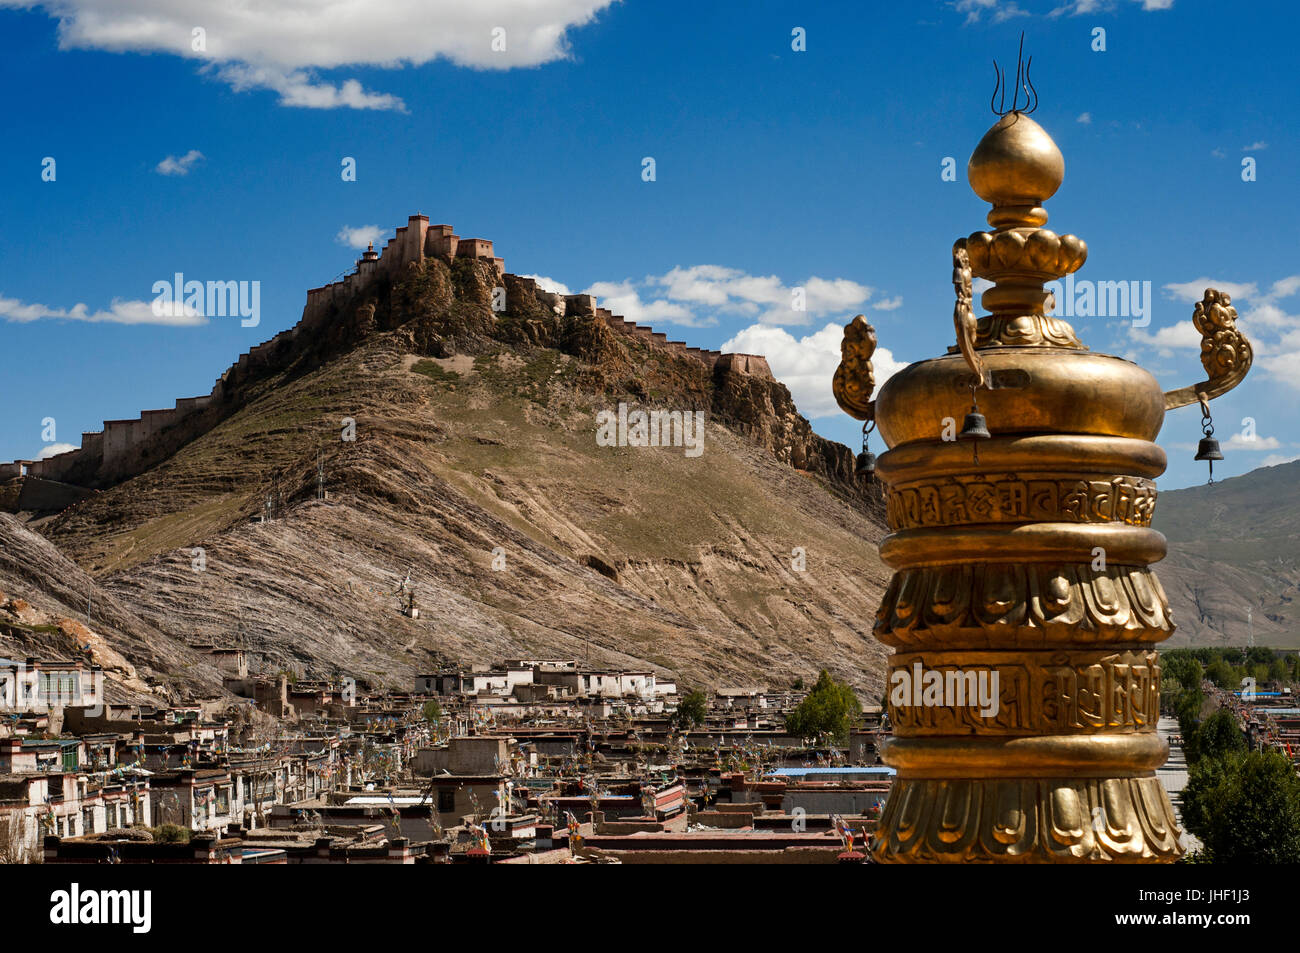 Views of the Dzong Fortress from the Pelkhor Chode Monastery, Gyantse, Tibet, China, Asia. Stock Photo